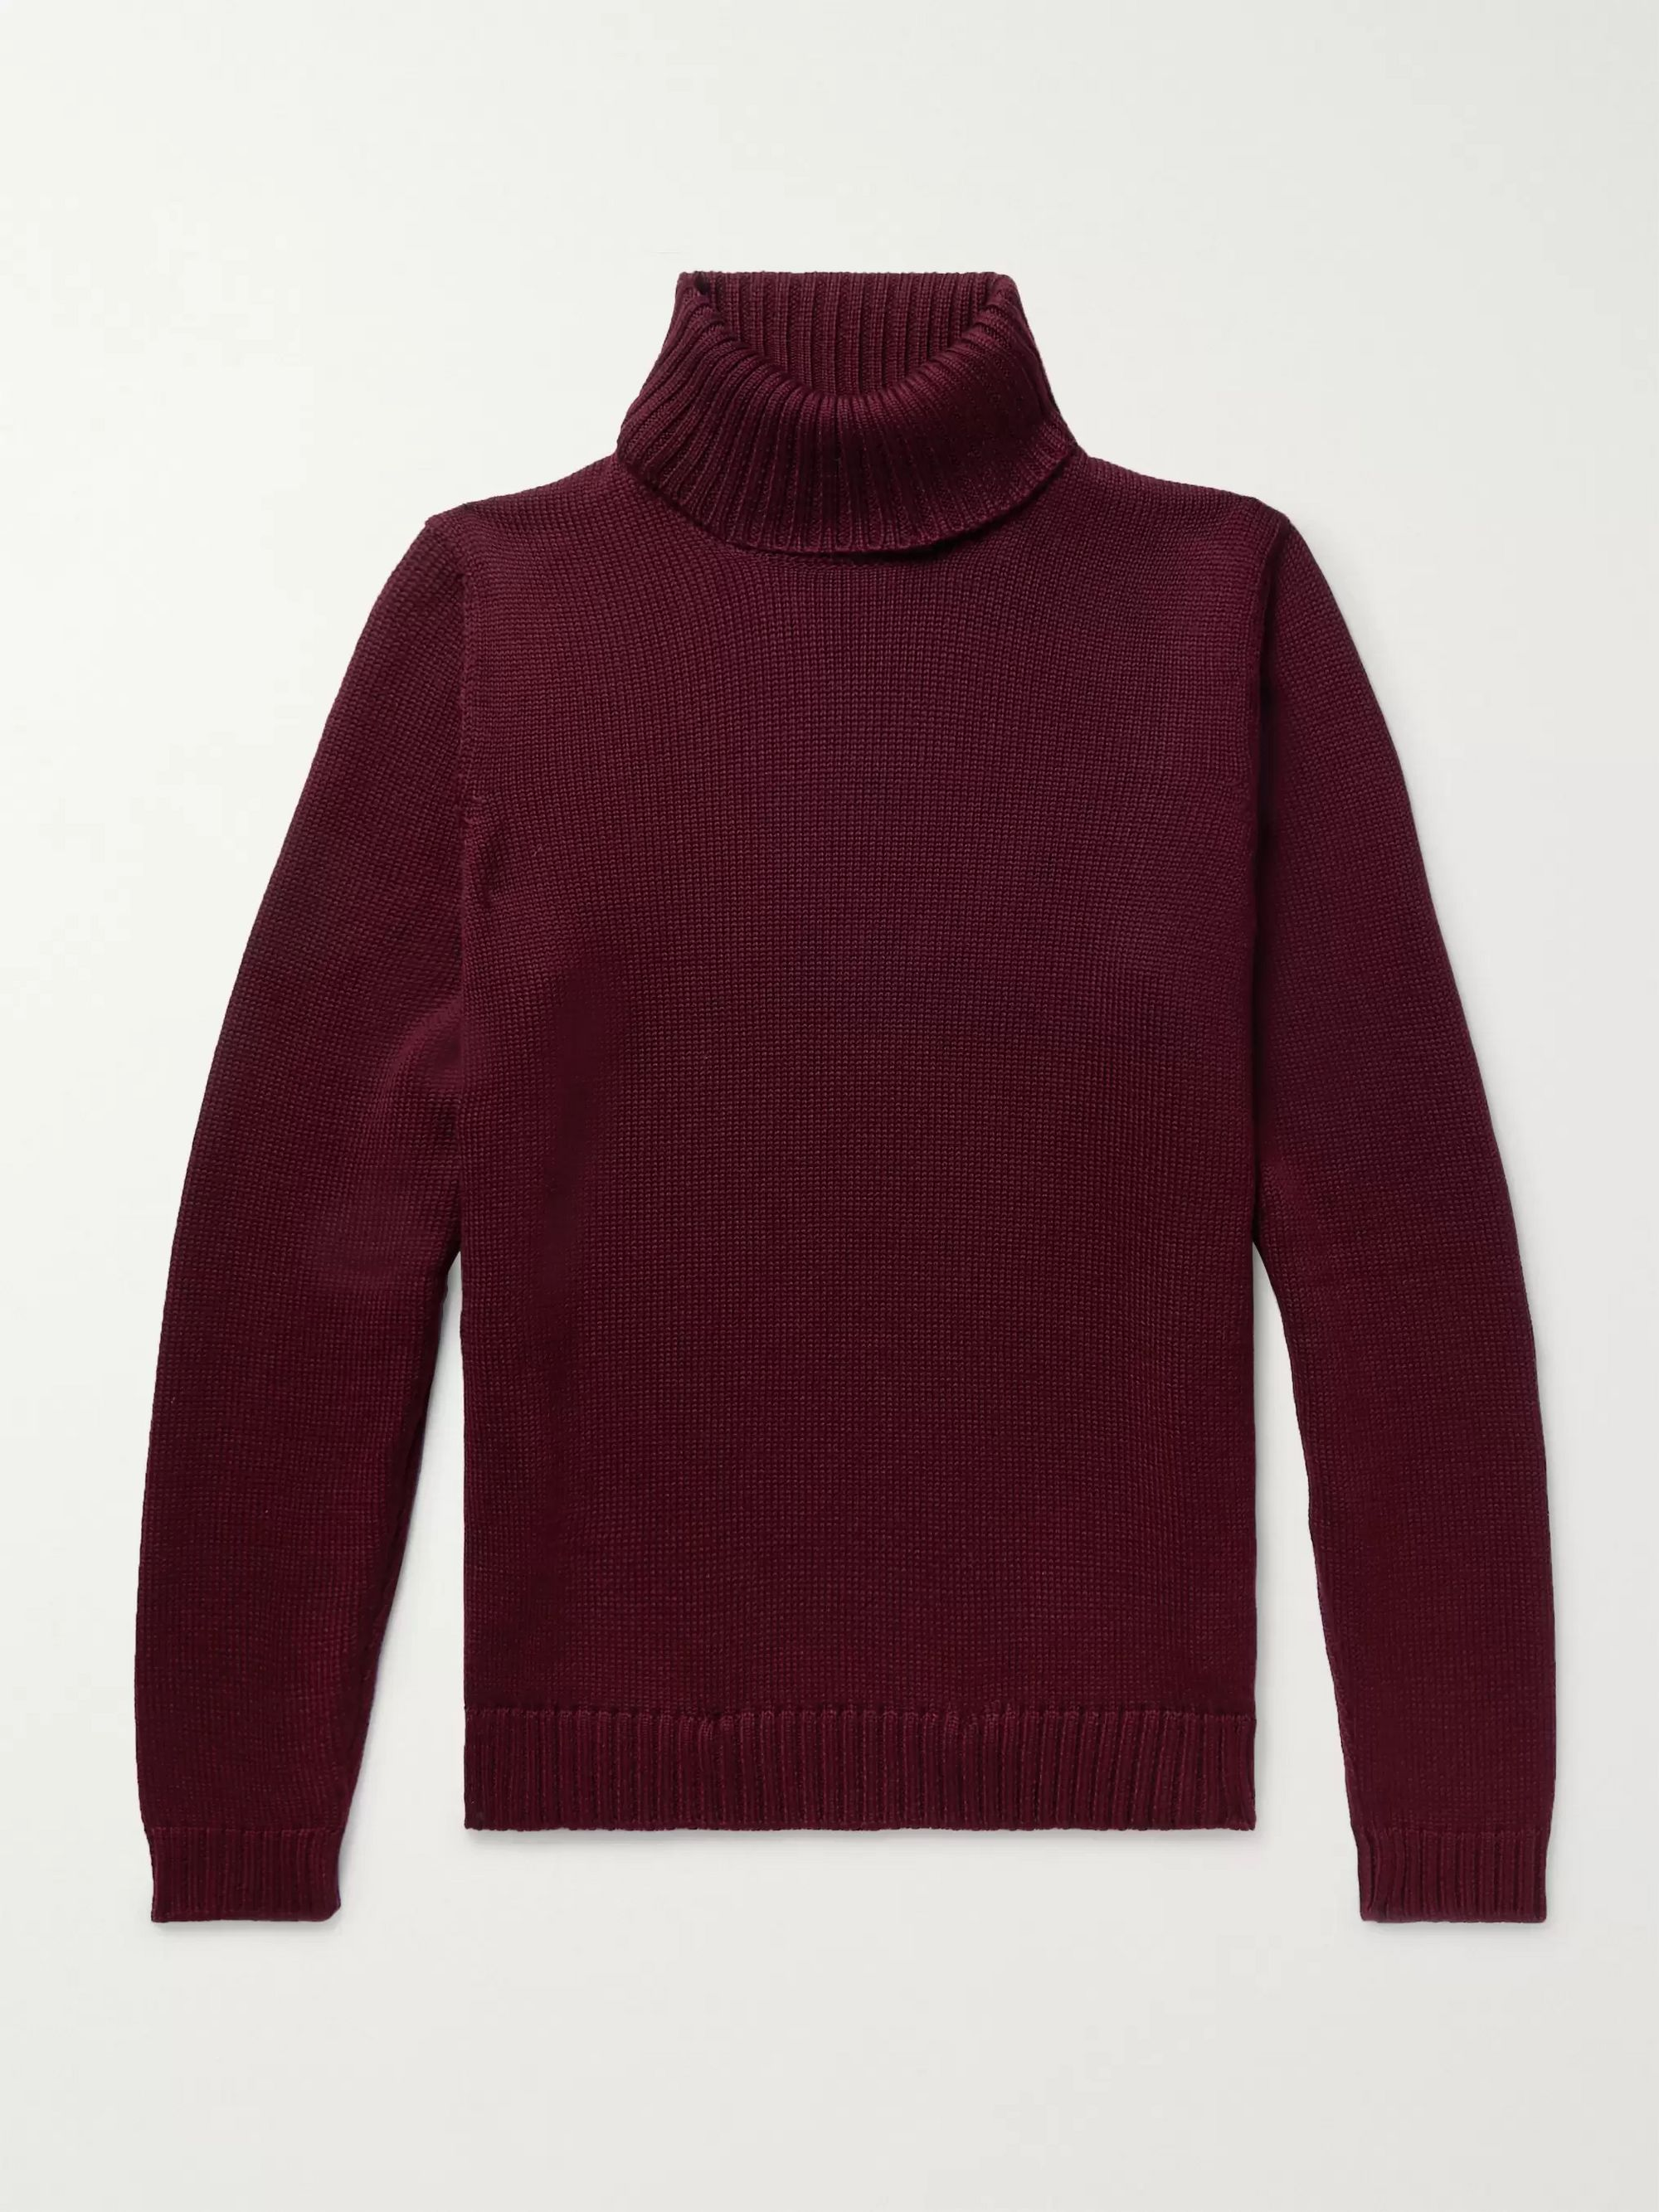 Incotex Slim-Fit Virgin Wool Rollneck Sweater